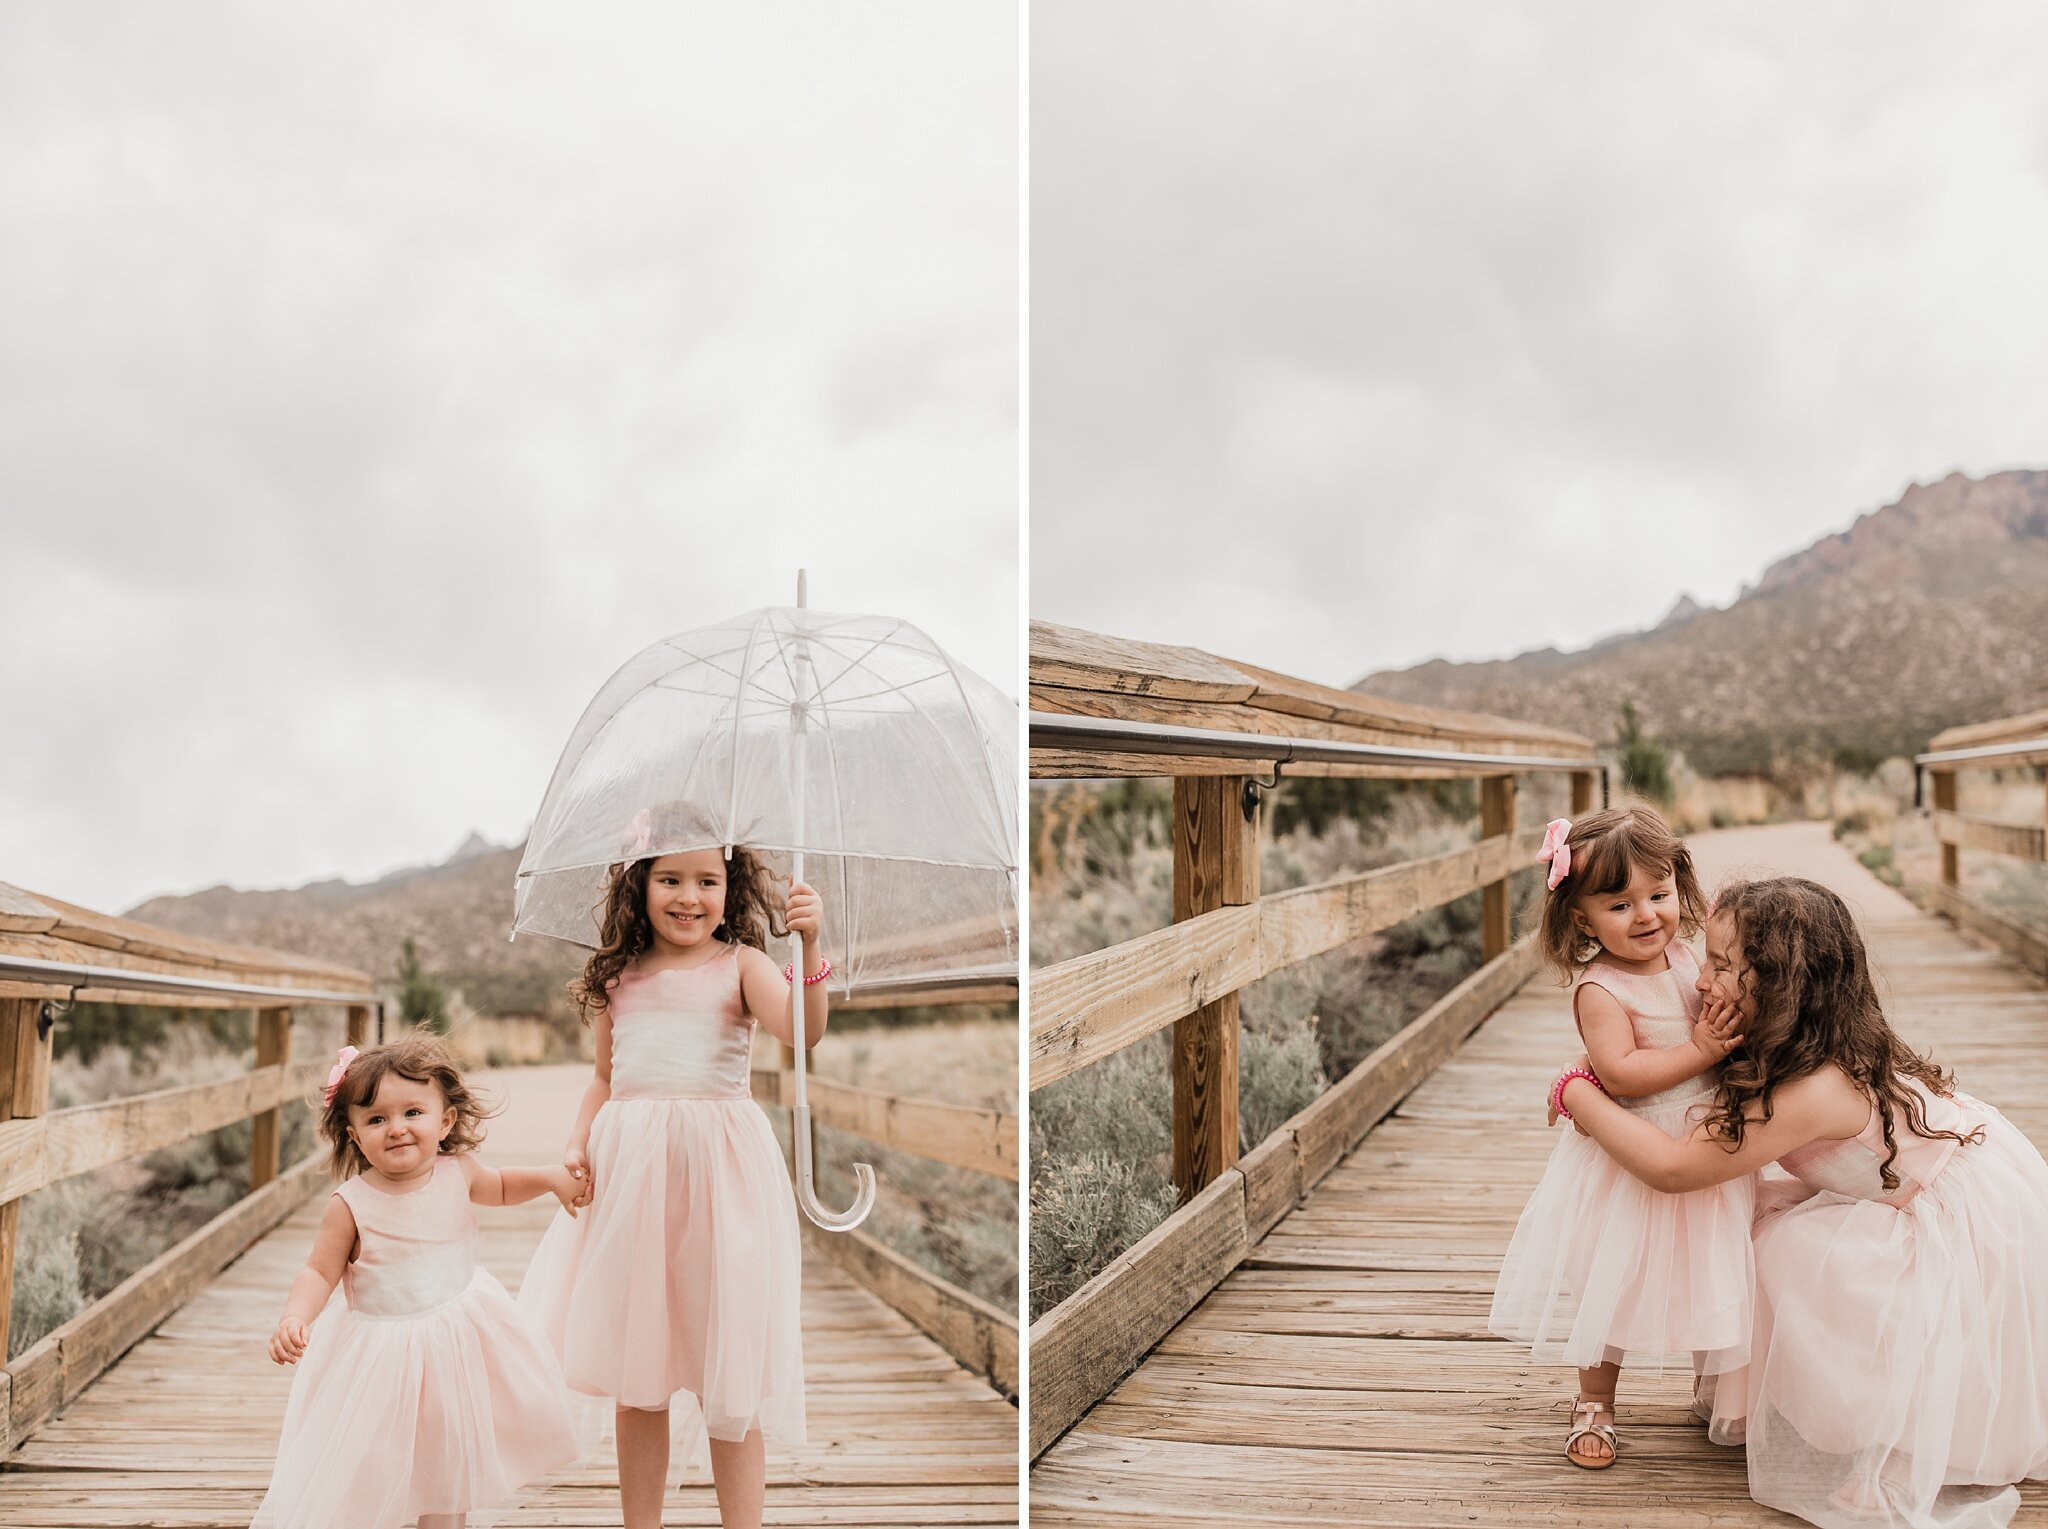 Alicia+lucia+photography+-+albuquerque+wedding+photographer+-+santa+fe+wedding+photography+-+new+mexico+wedding+photographer+-+new+mexico+wedding+-+family+portraits+-+family+photographer+-+new+mexico+family+photographer_0003.jpg